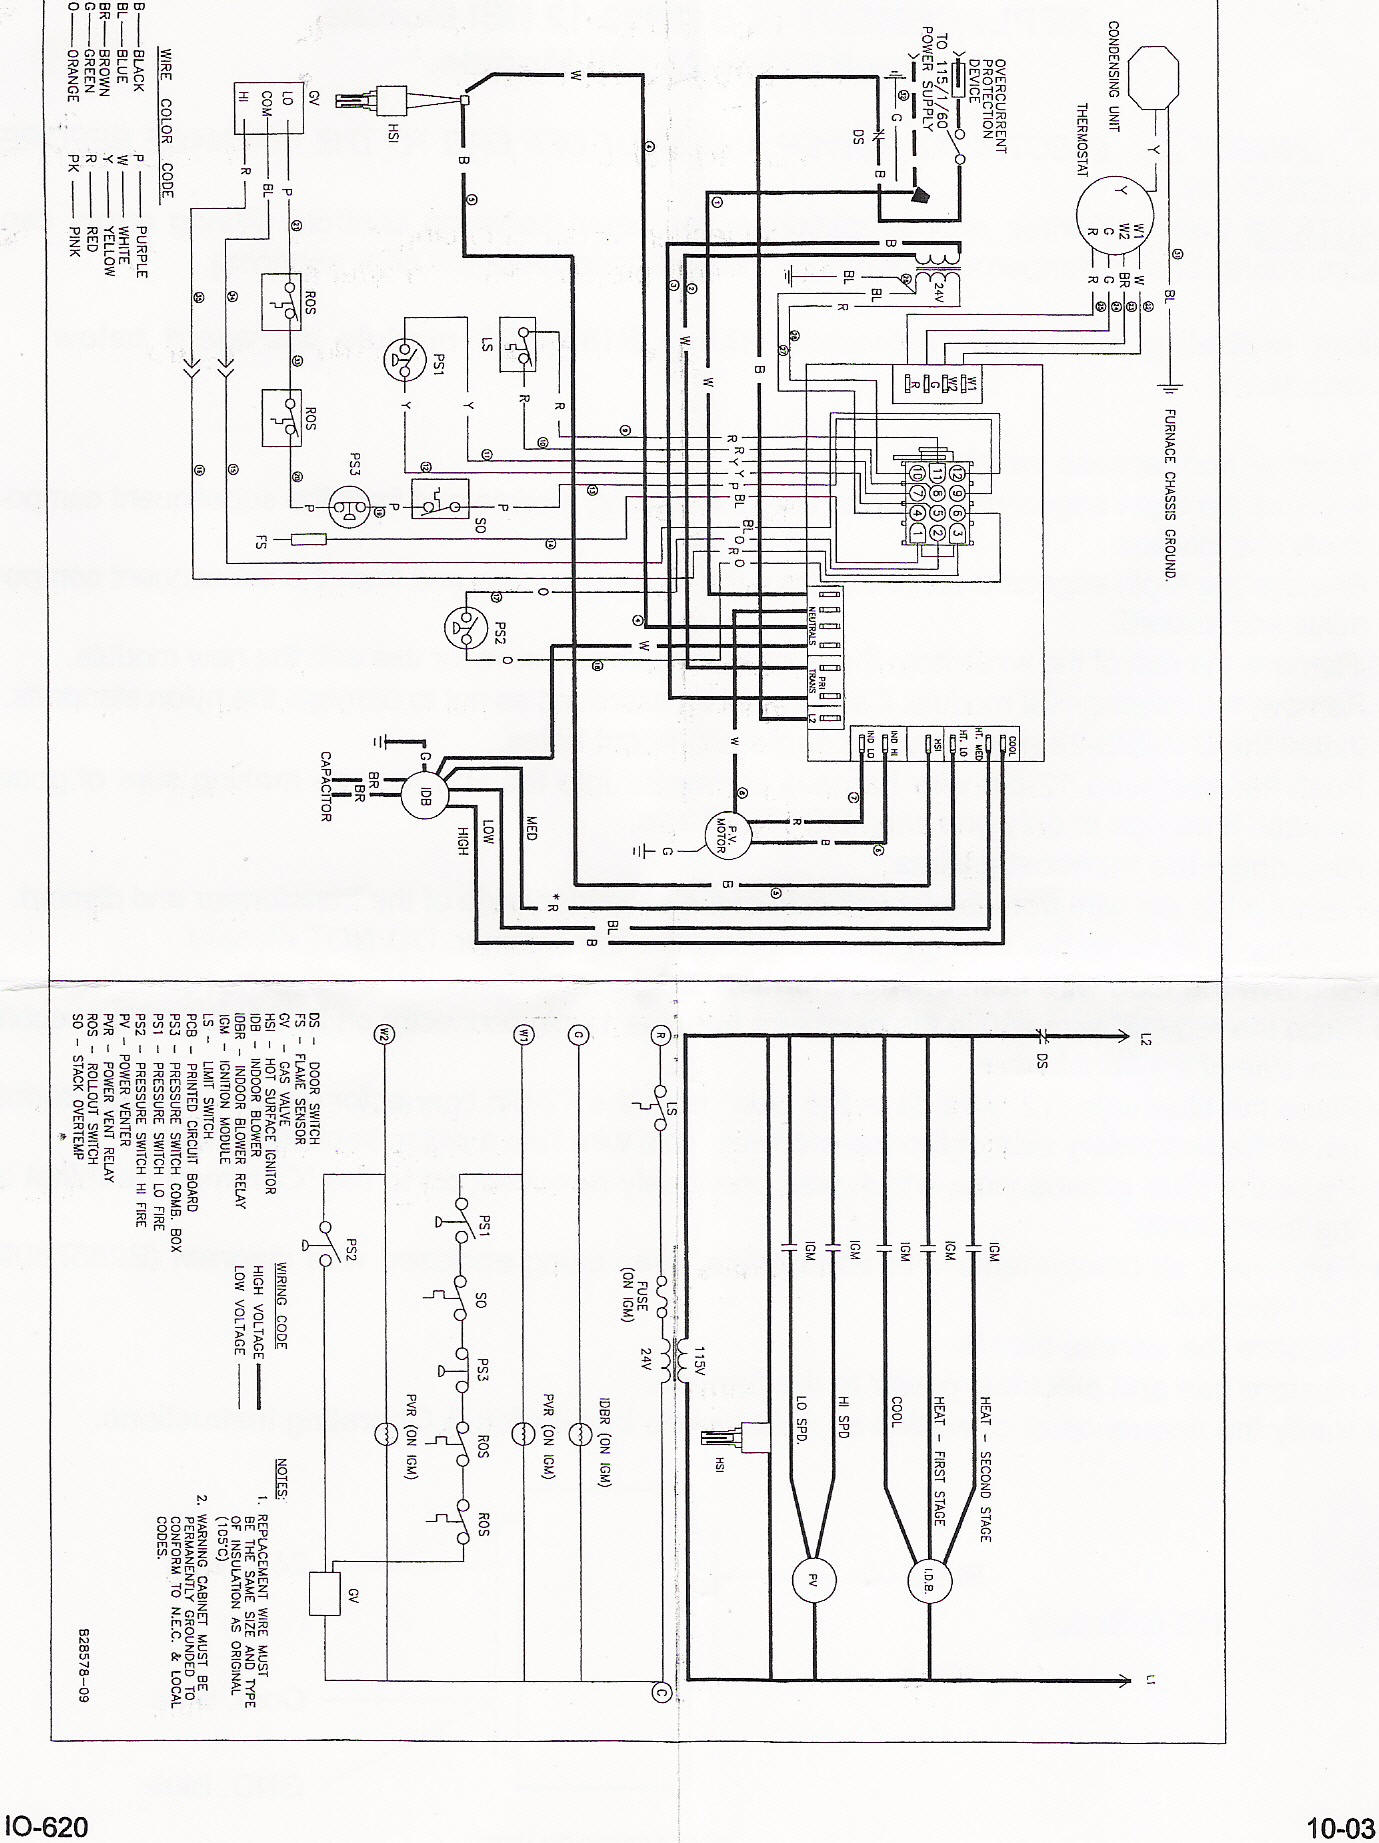 goodma2 instr goodman control board b18099 23 instructions goodman air handler wiring diagrams at edmiracle.co